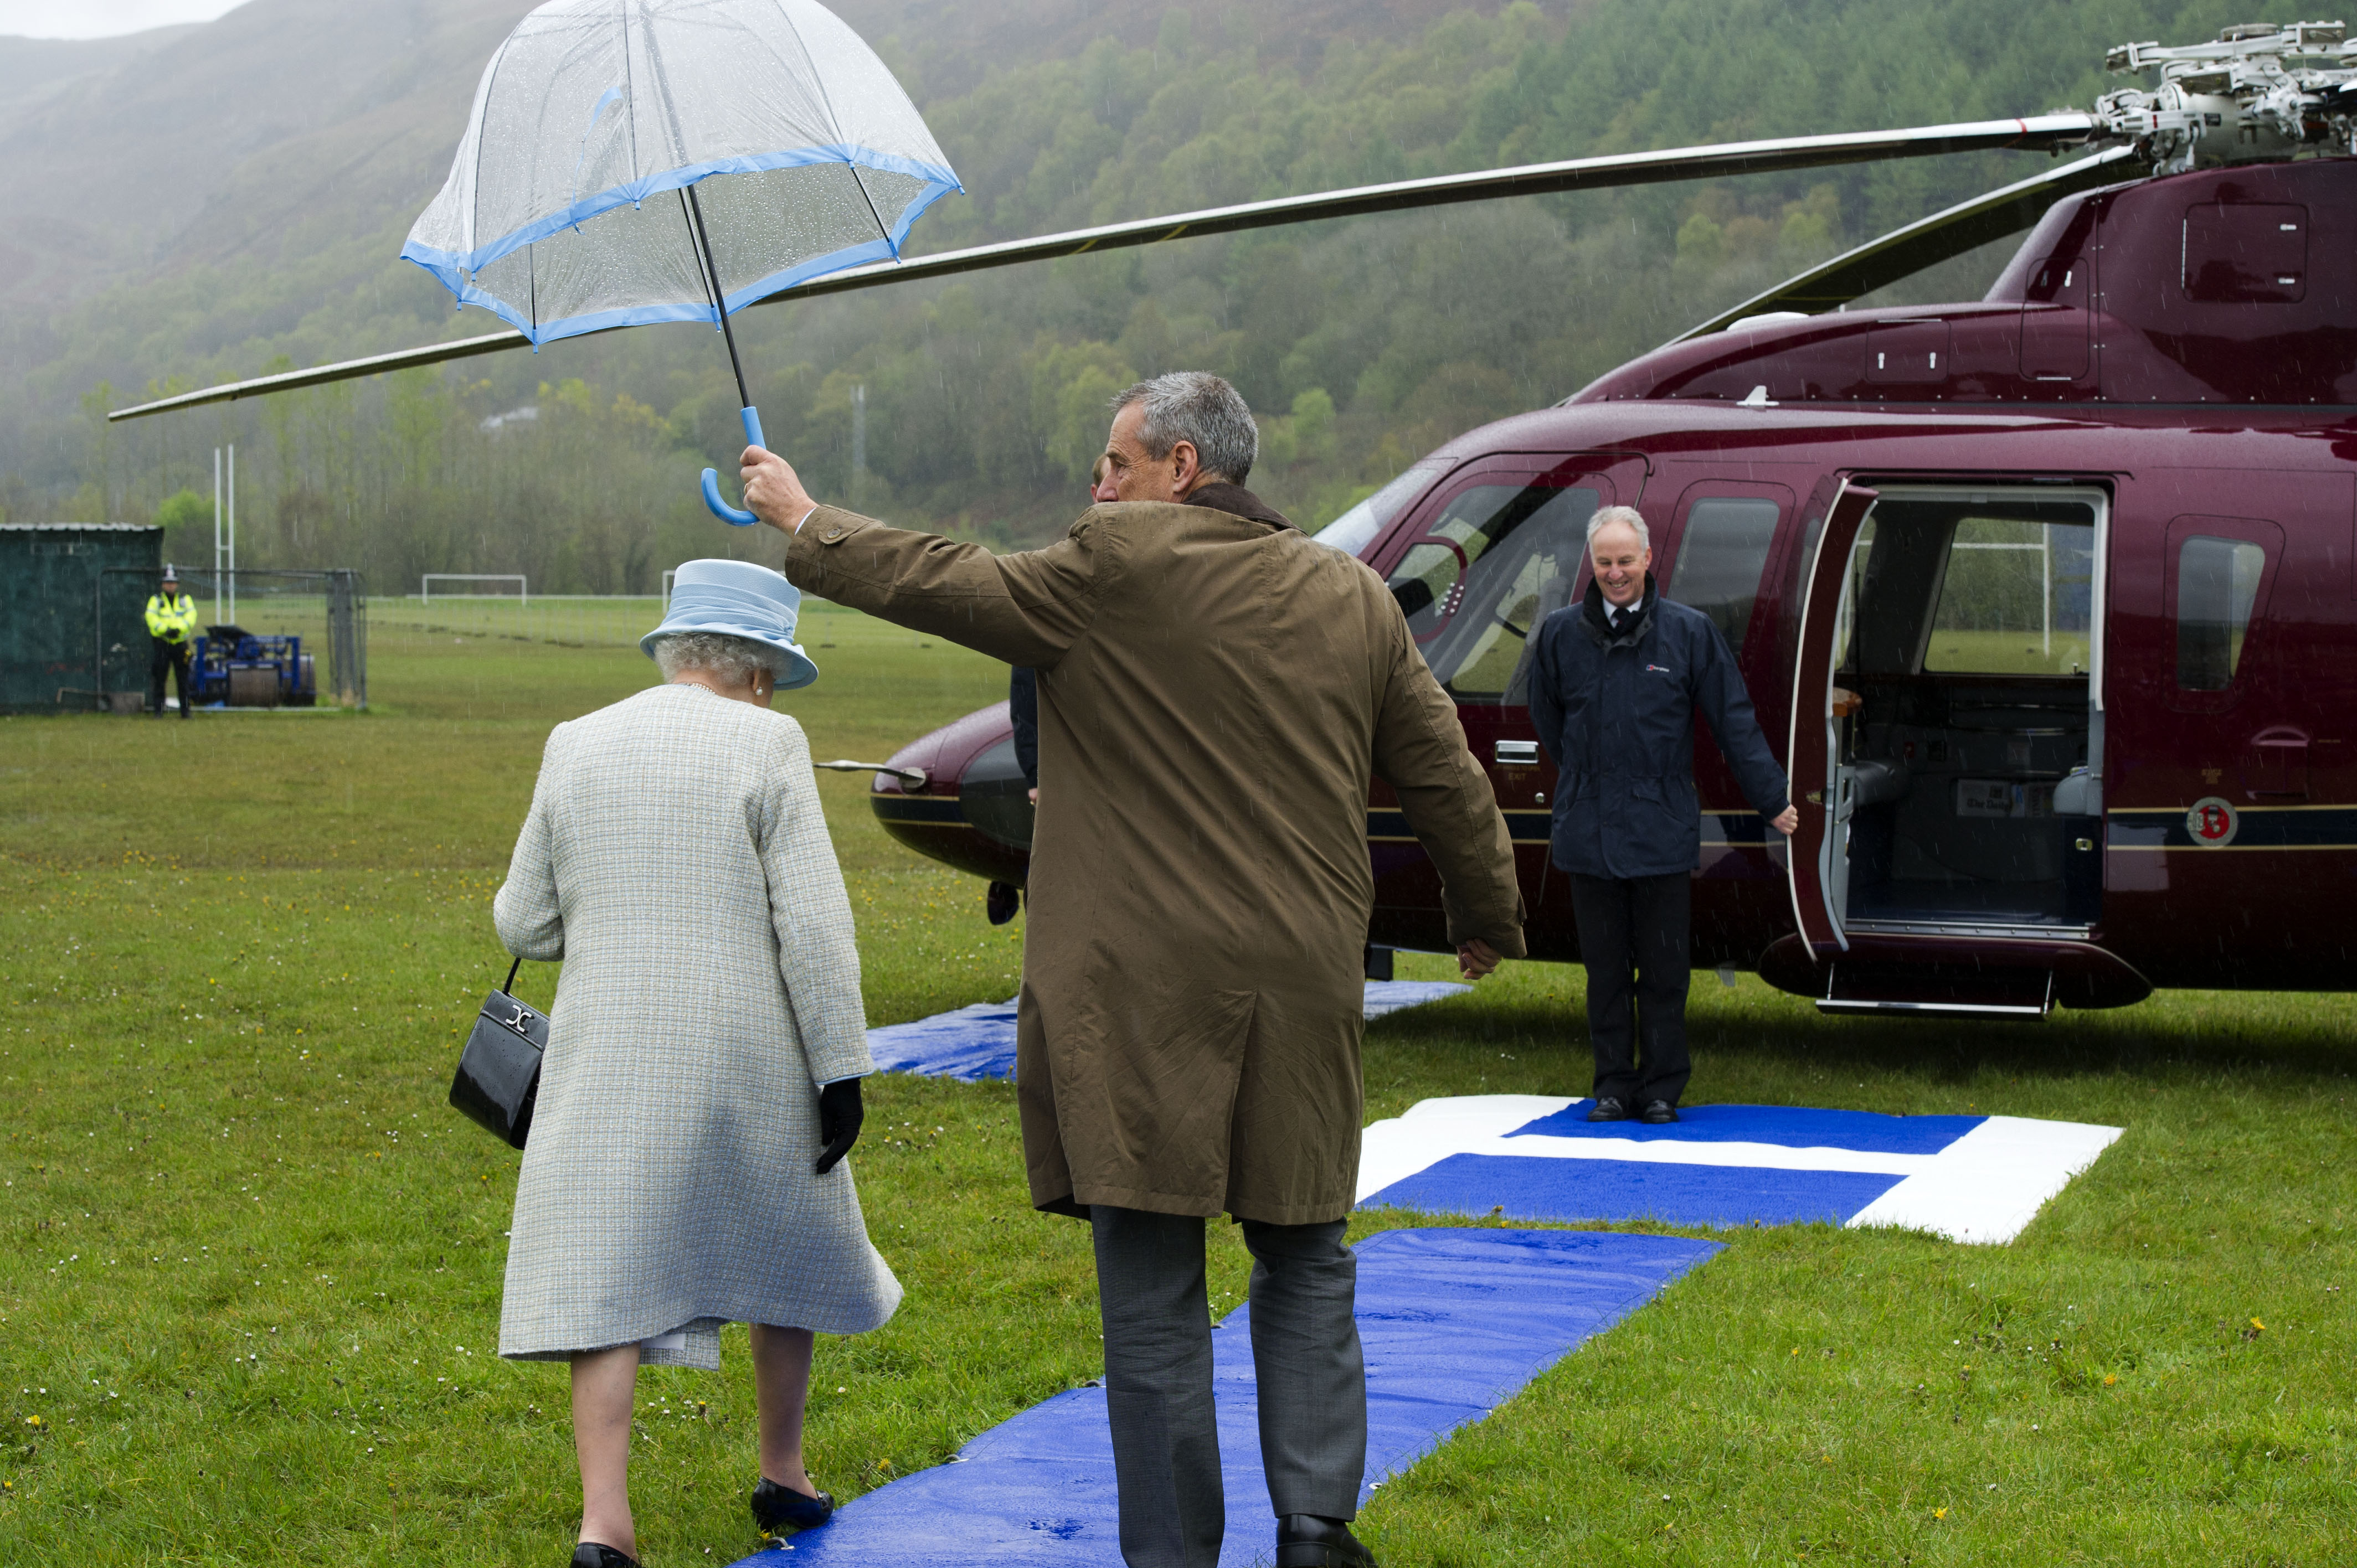 ABERFAN, WALES - APRIL 27: Queen Elizabeth II is sheltered by an umbrella as she walks to the royal helicopter after officially opening Ynysowen Community Primary School on April 27, 2012 in Aberfan, near Merthyr Tydfil in South Wales. As part of their Diamond Jubilee tour of the country, during their two day visit to Wales the Queen and Duke of Edinburgh made their fourth visit to the village of Aberfan since the community lost the lives of 116 children and 28 adults to the collapse of a colliery spoil tip in 1966. (Photo by Arthur Edwards - WPA Pool/Getty Images)